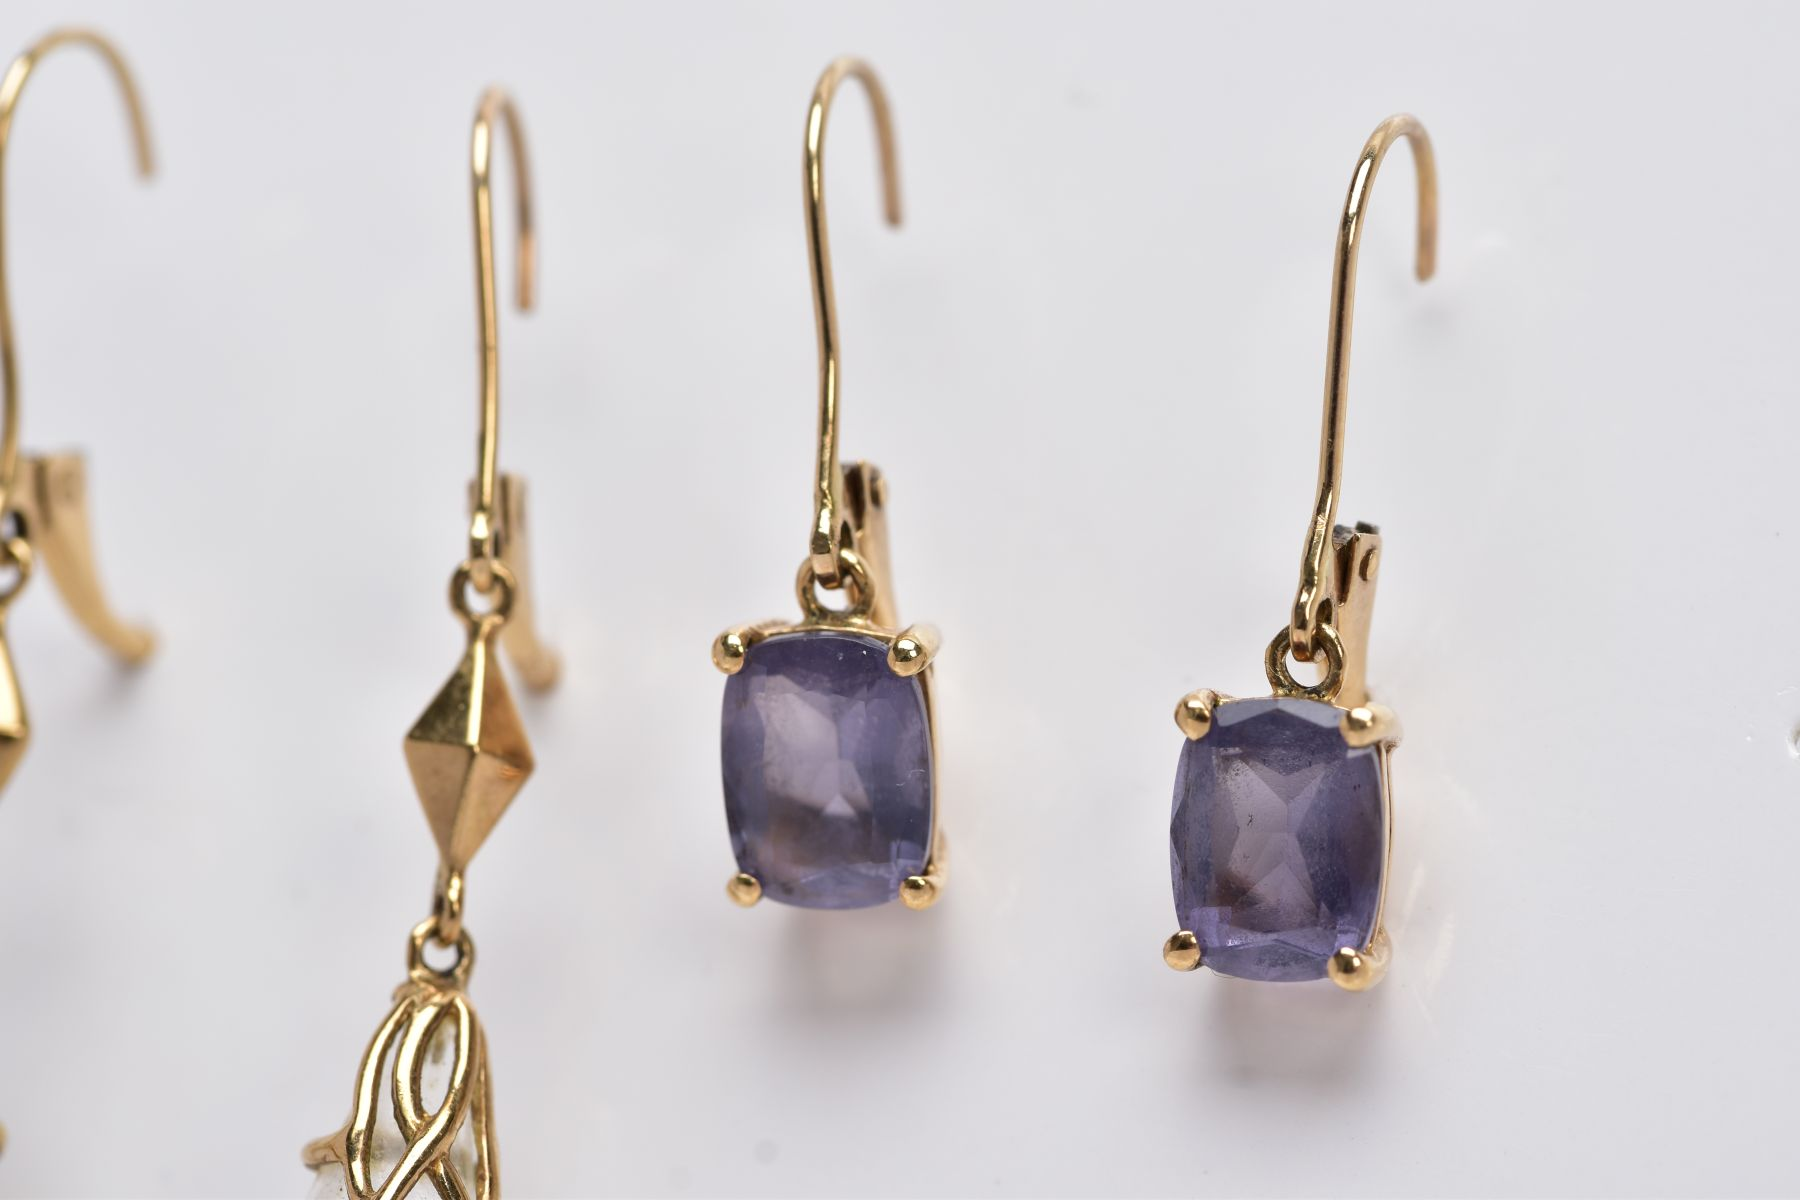 TWO PAIRS OF YELLOW METAL GEMSET DROP EARRINGS, the first pair suspending claw set, oval cut - Image 2 of 4